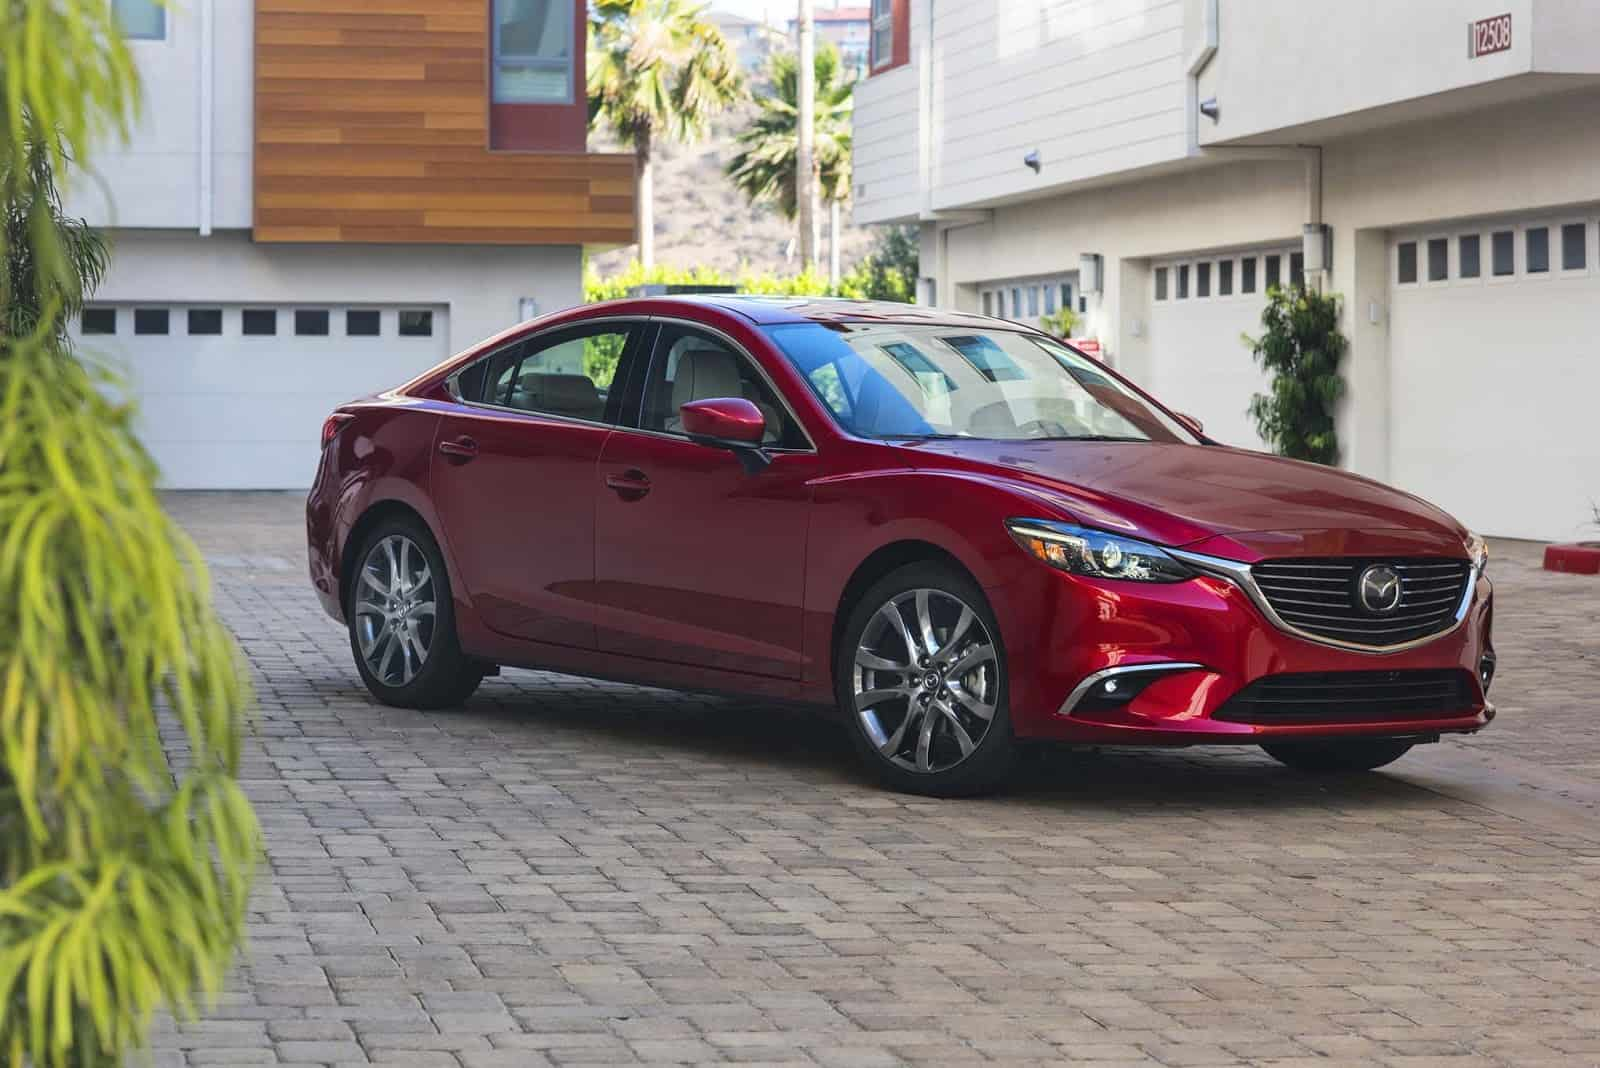 The Complete Beginner's Guide to Modding Your 2017 Mazda 6